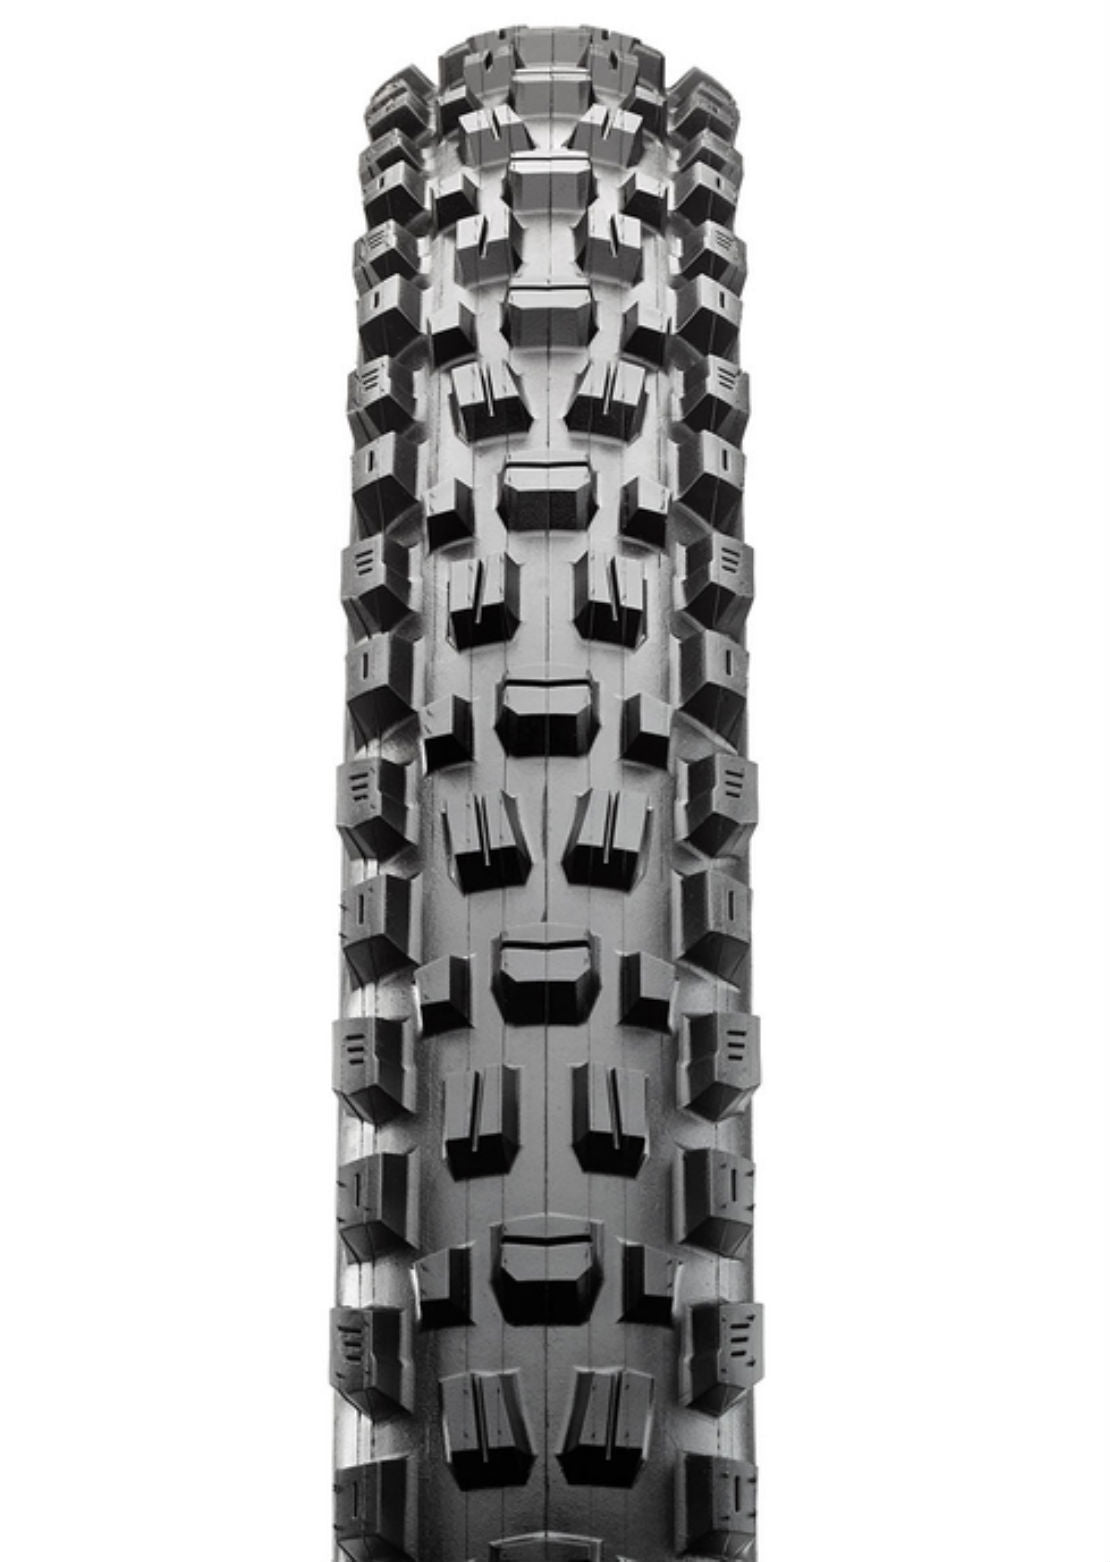 Maxxis Mountain Series Assegai 29.5'' x 2.50 Mountain Bike Tires